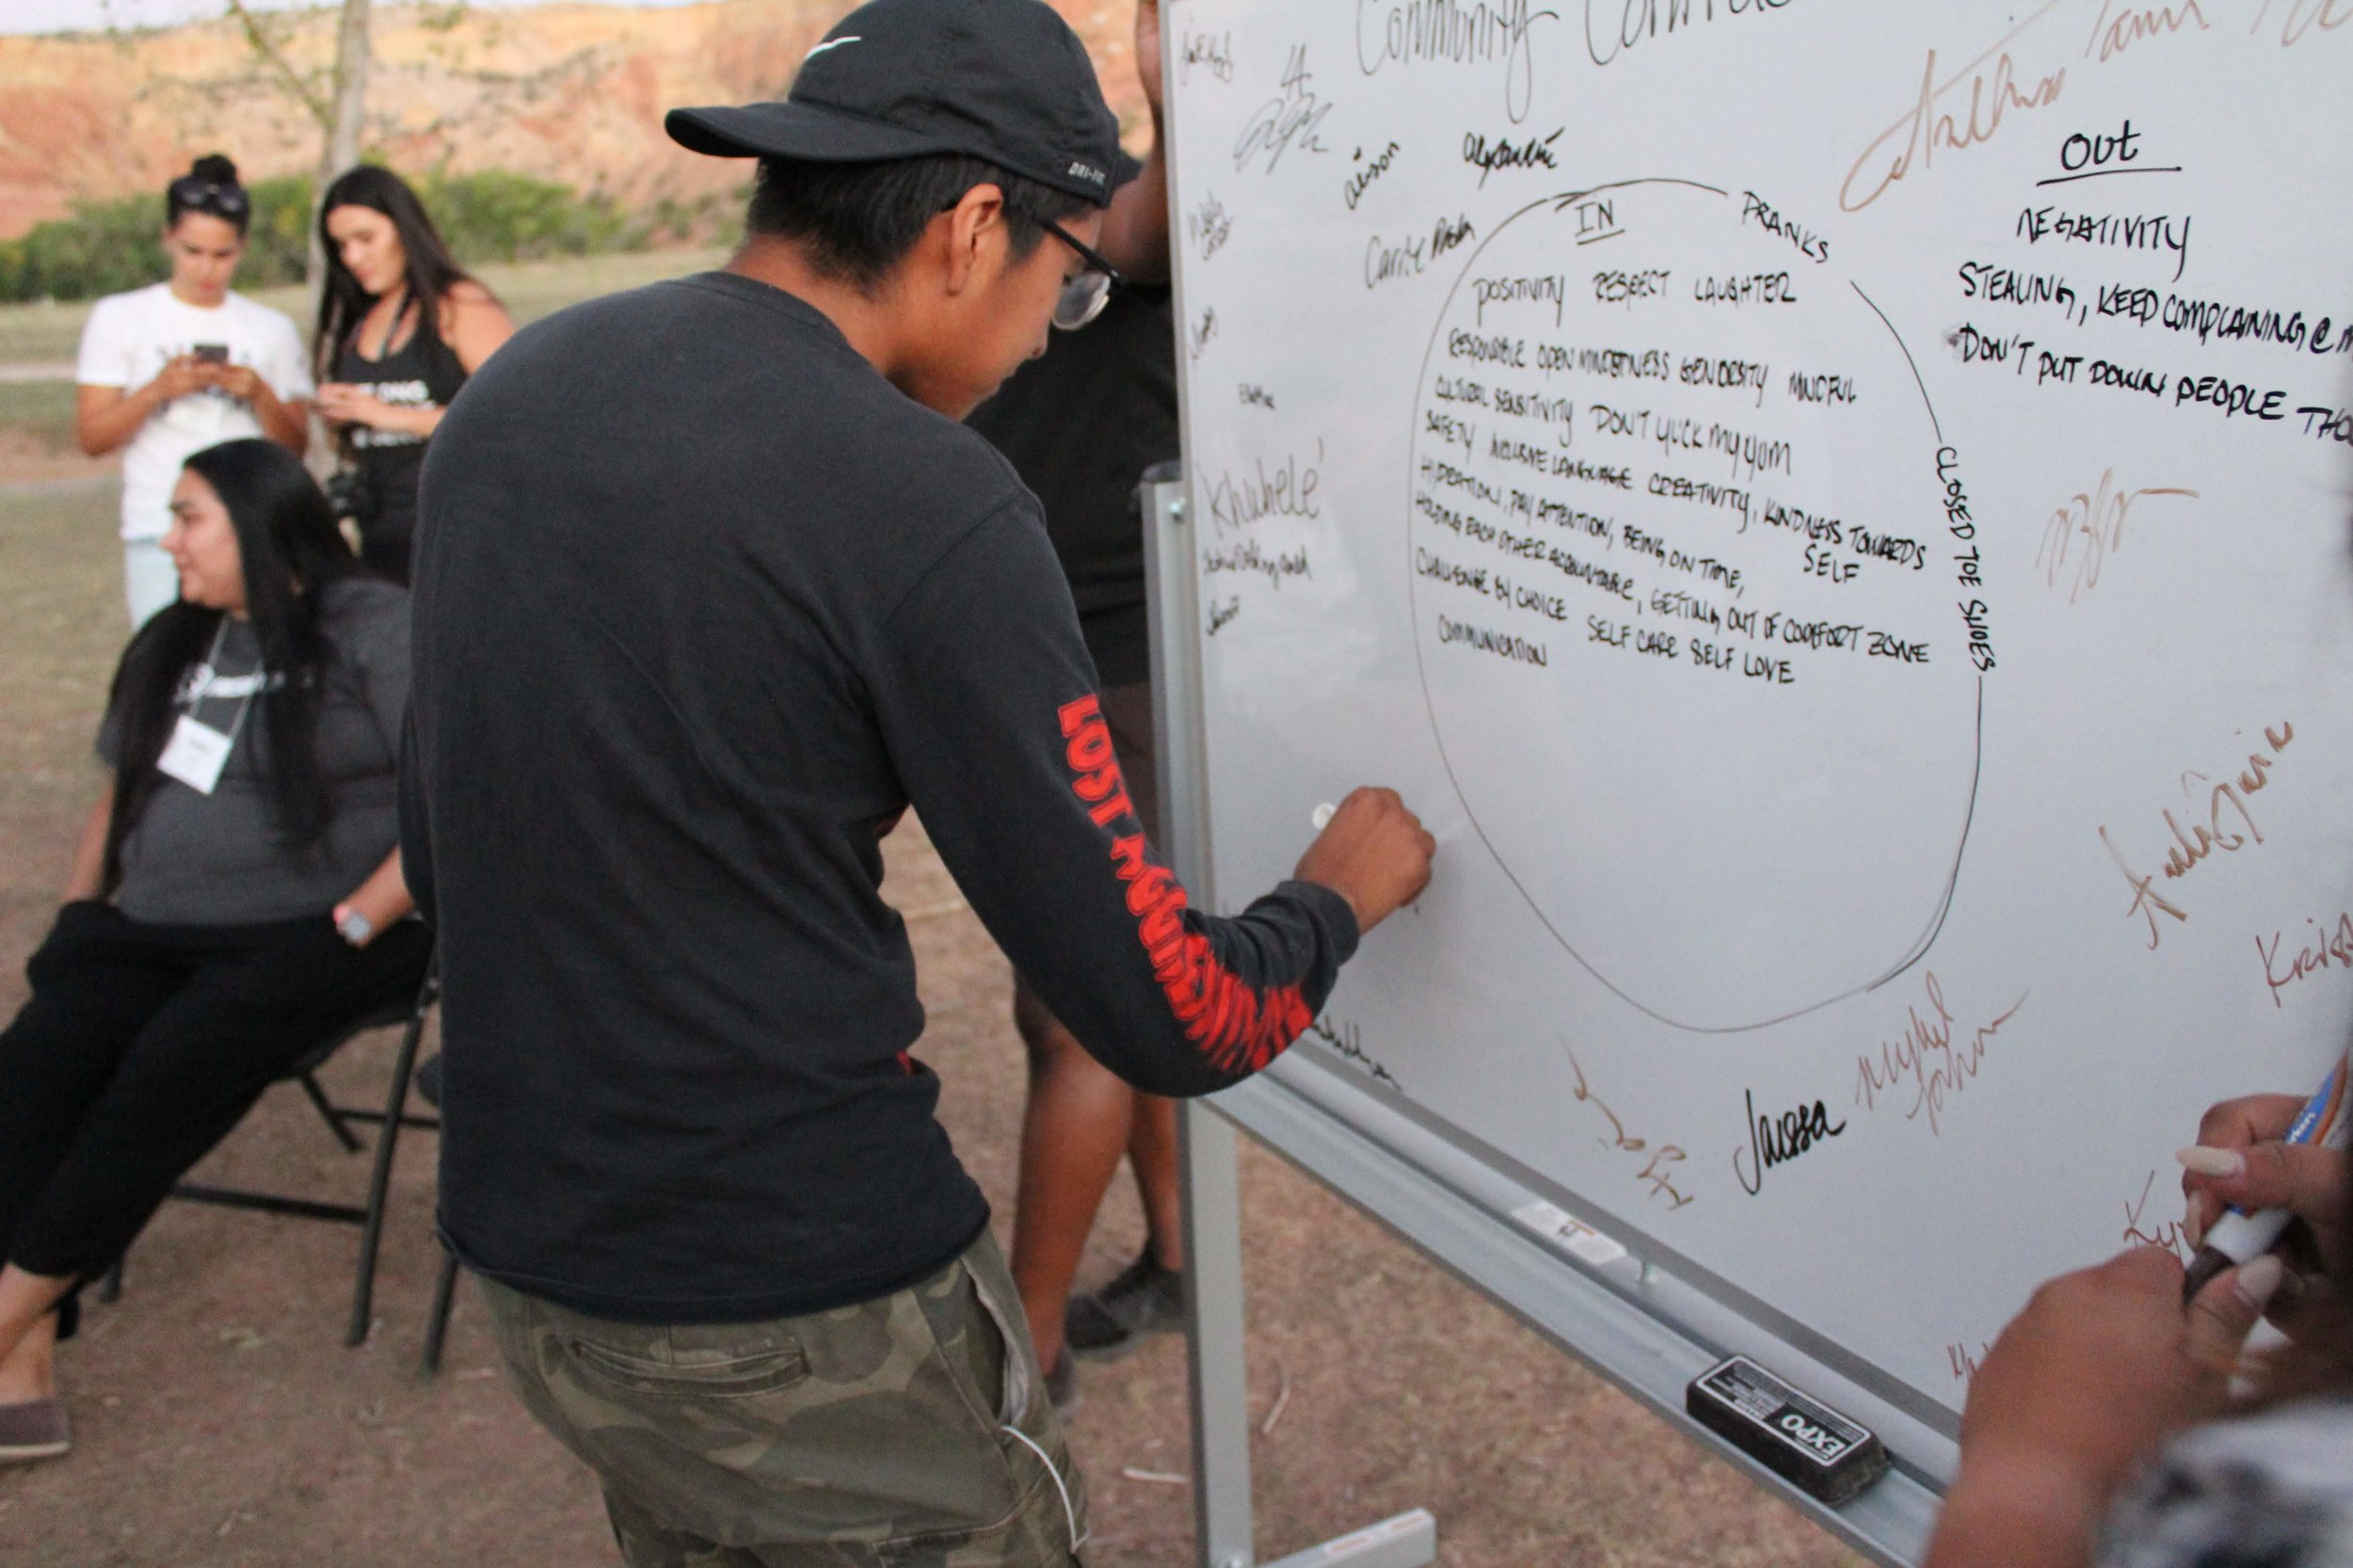 Fresh Tracks participants sign the community contract on the first day of the Southwest and Intermountain Training at Ghost Ranch in Abiquiú, New Mexico.